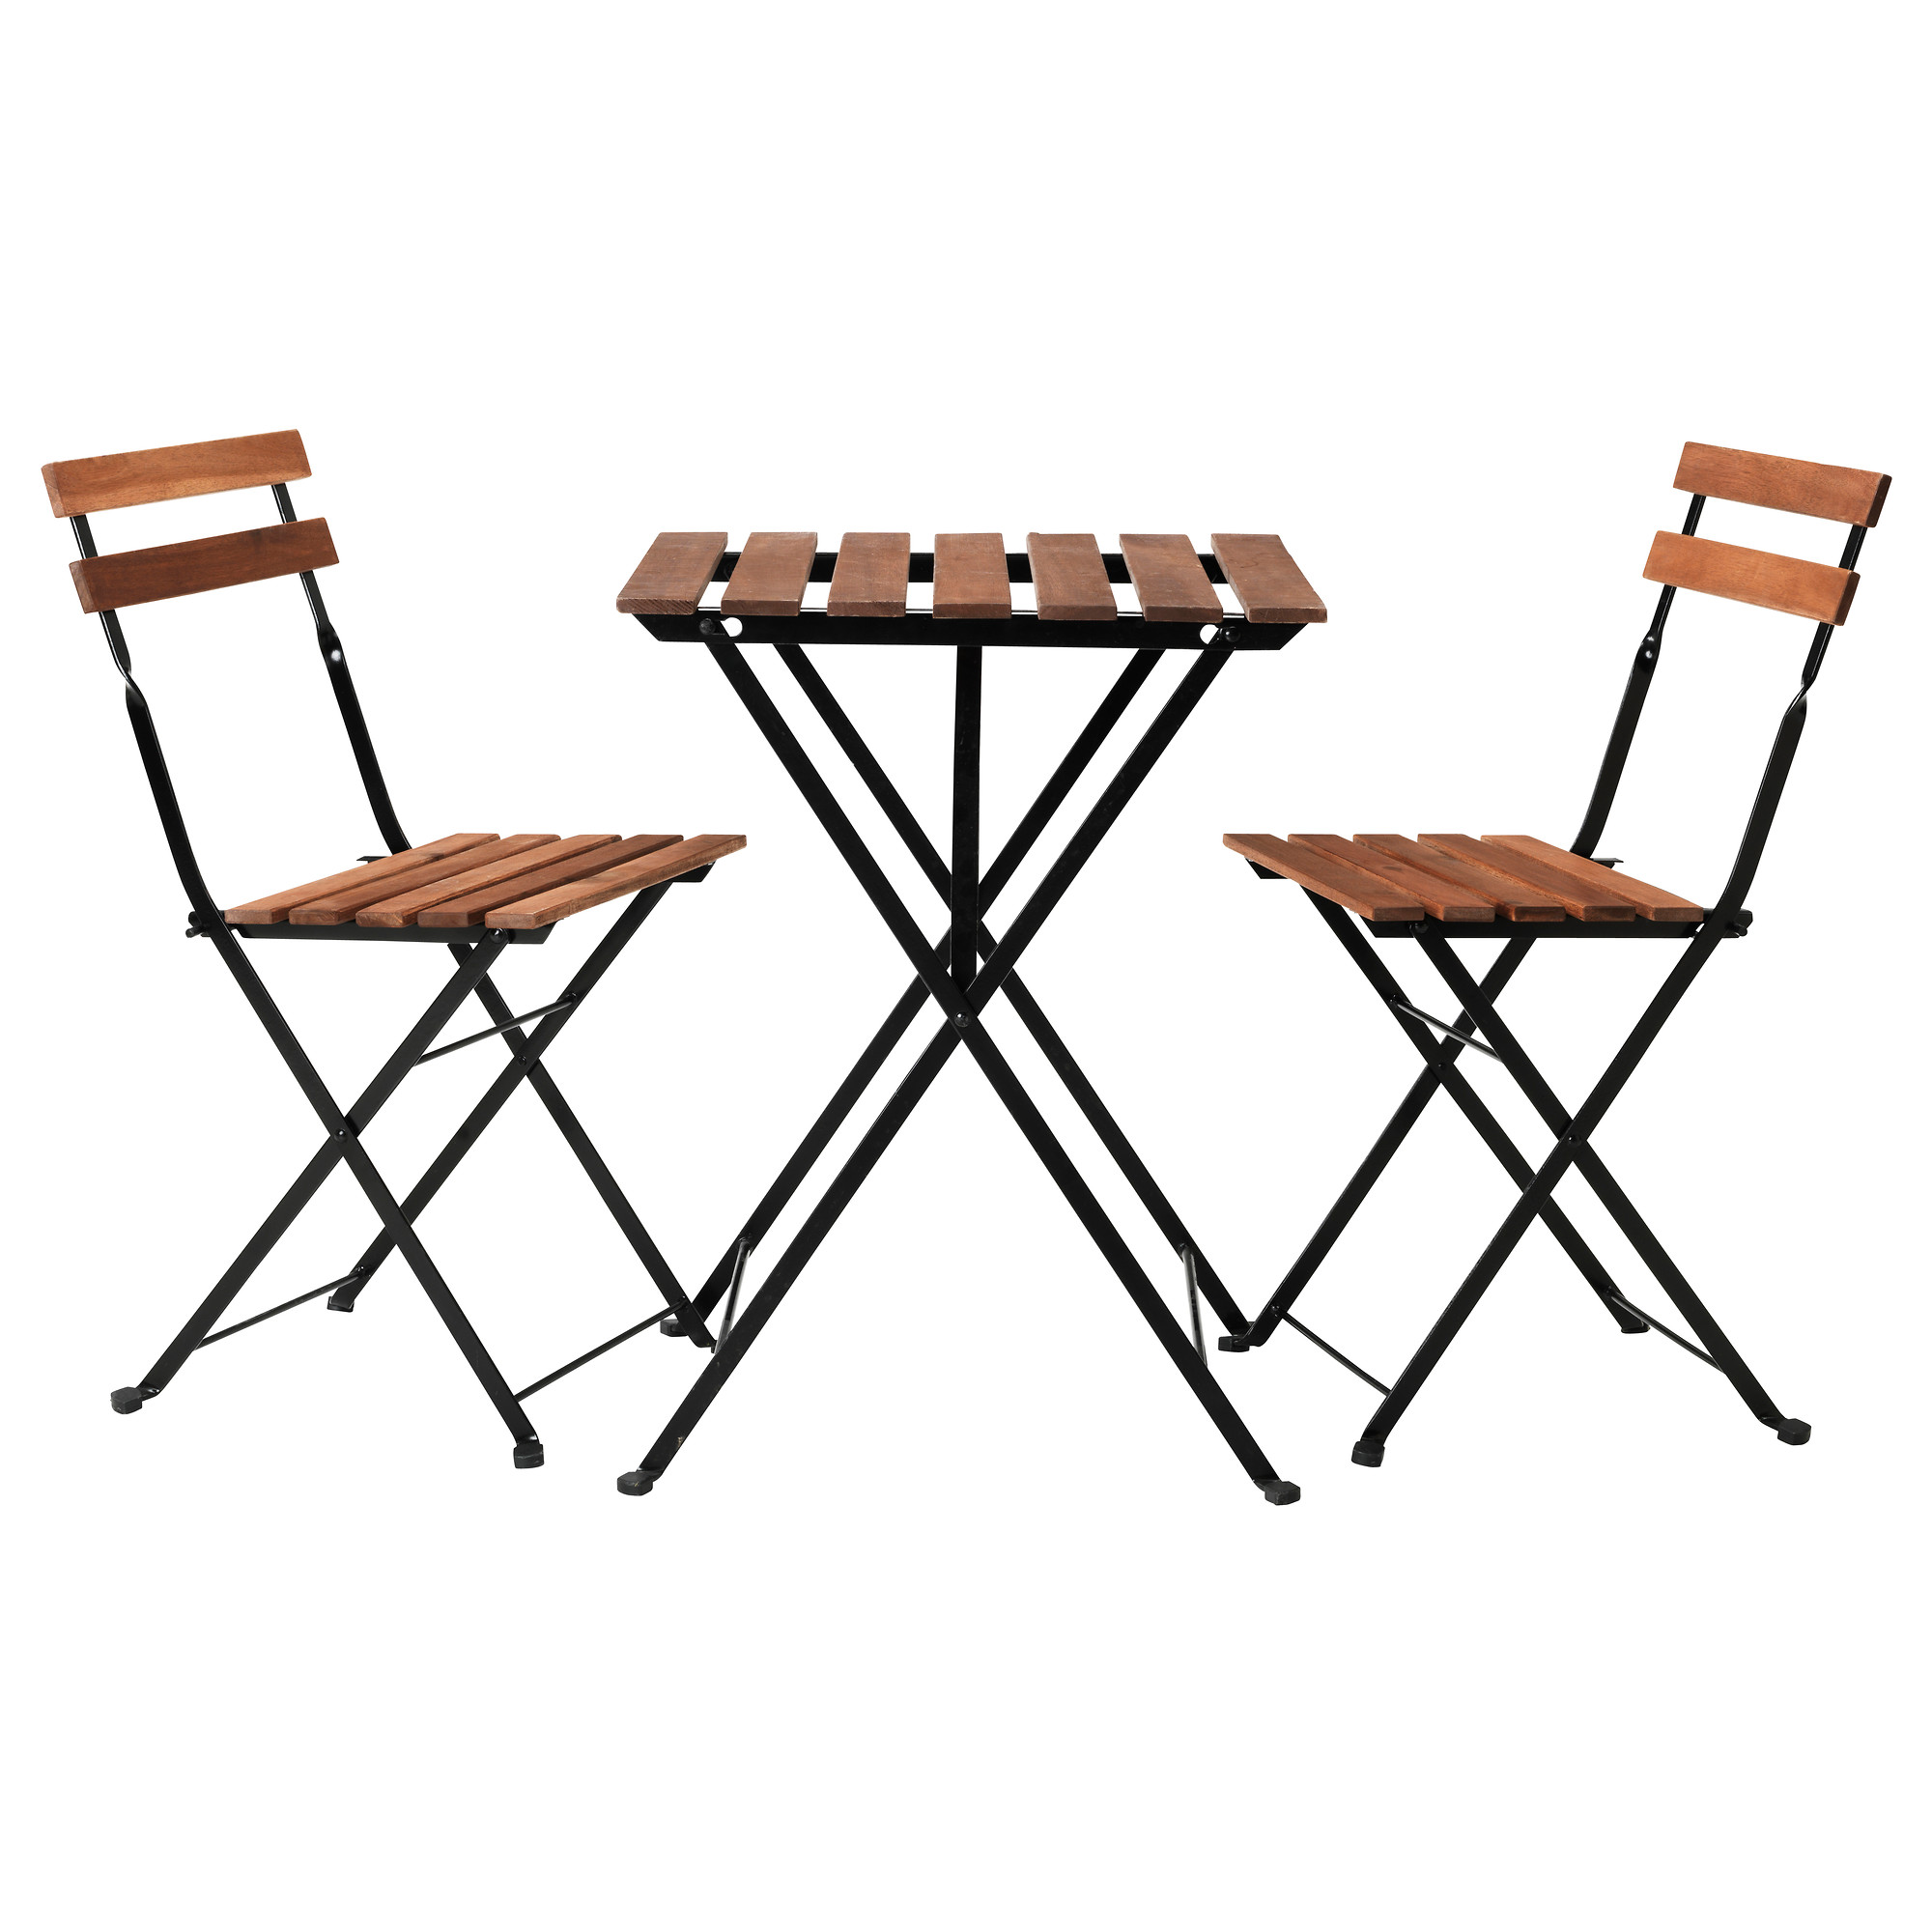 ikea outdoor patio furniture. trn table2 chairs outdoor black acacia ikea patio furniture a